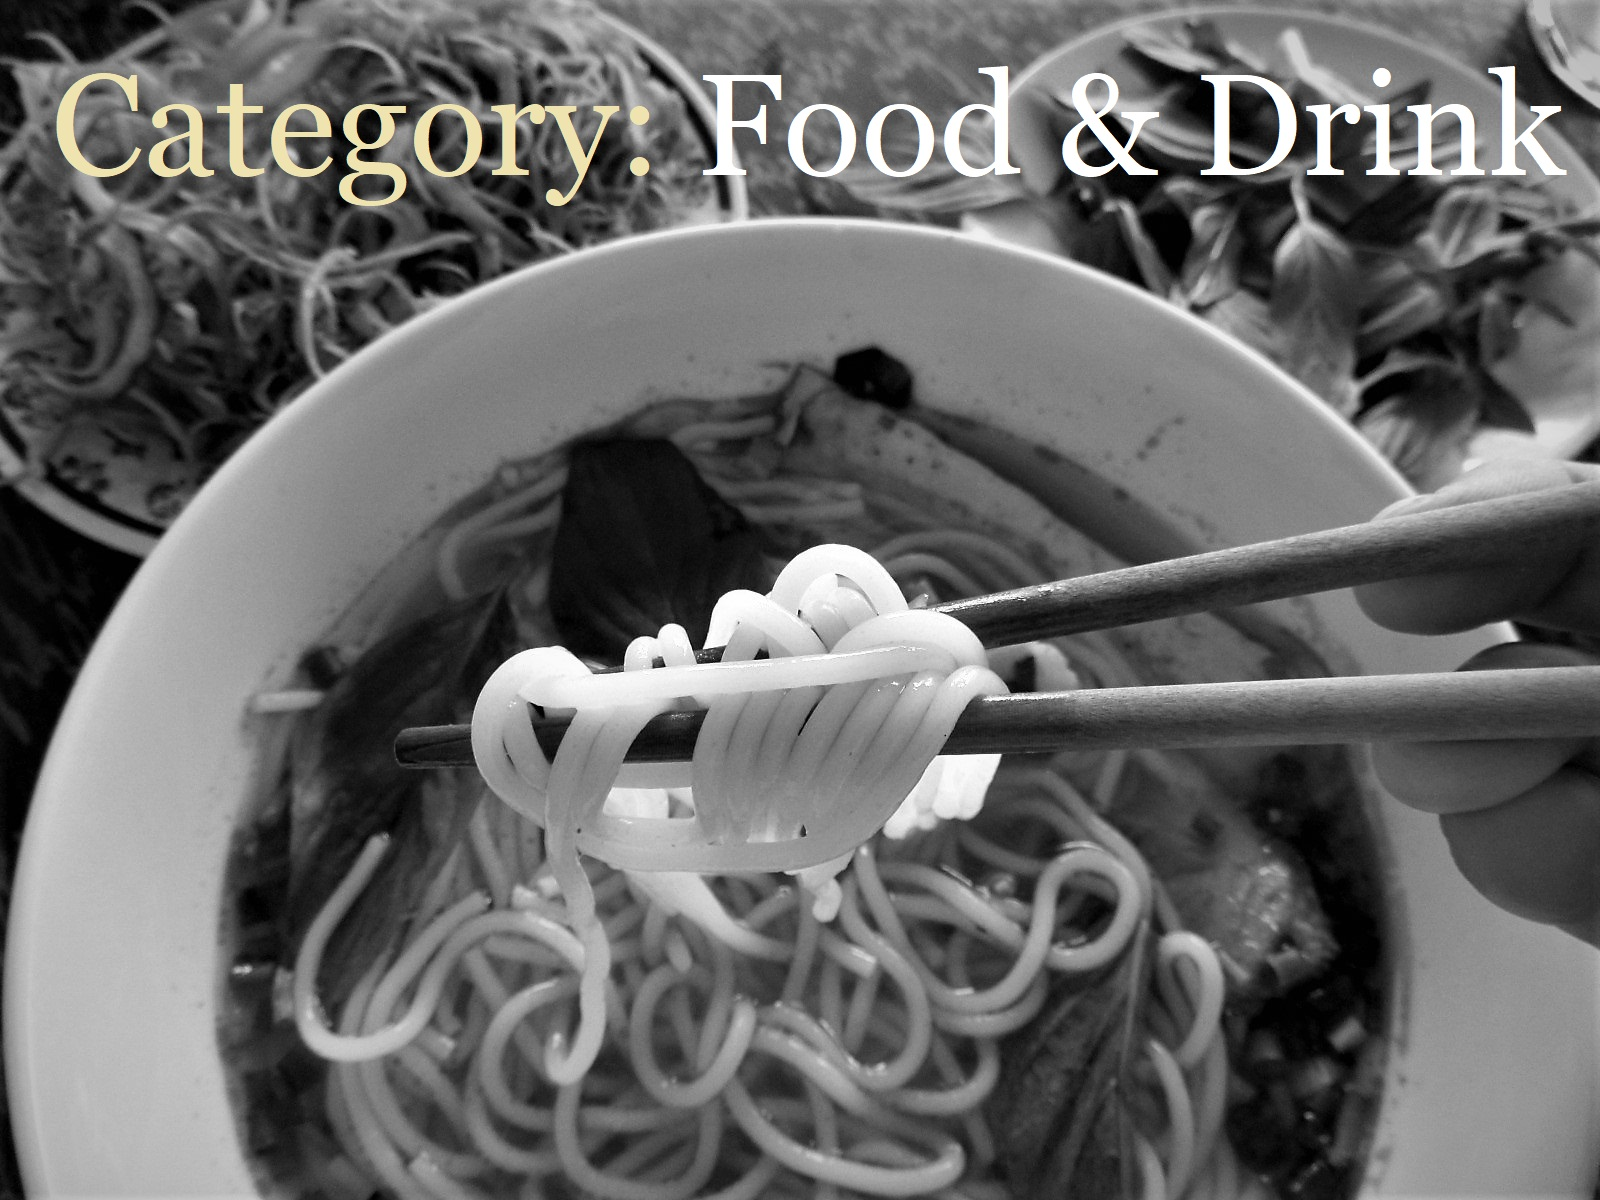 Food & Drink Category